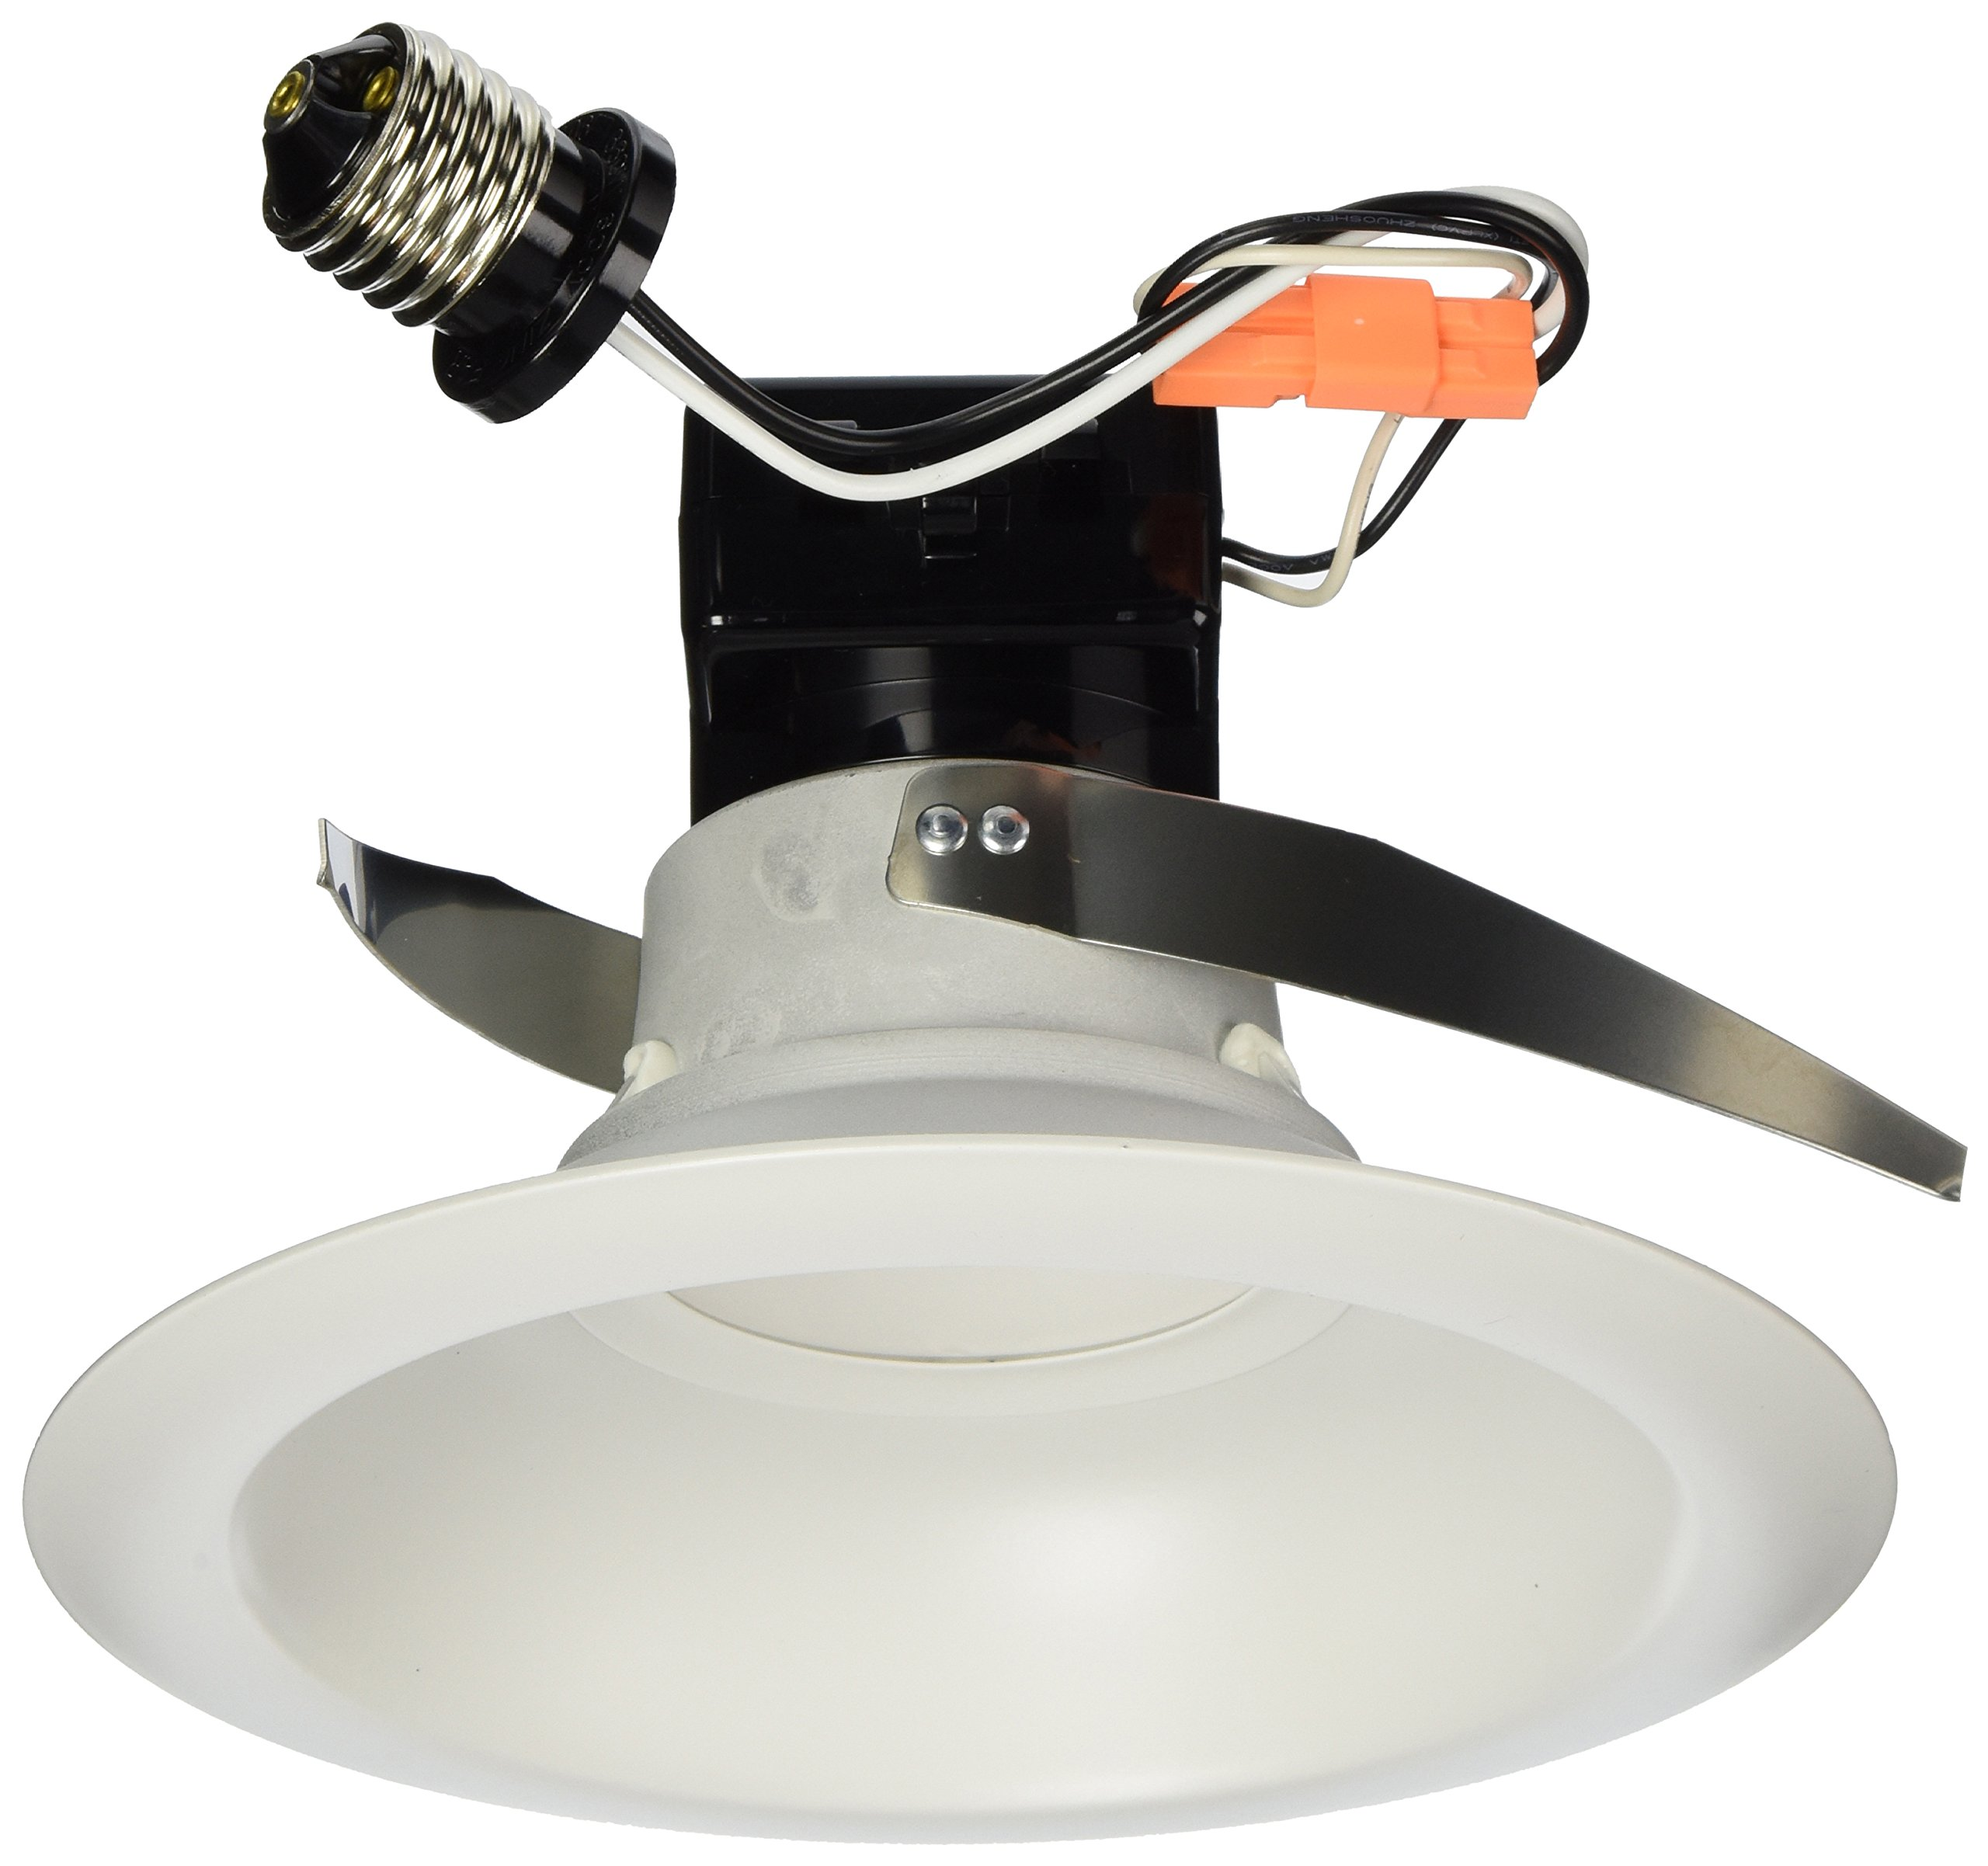 Hubbell-Prescolite LB6LEDA10L30K WH LiteBox Commercial LED Retrofit Downlight by Hubbell